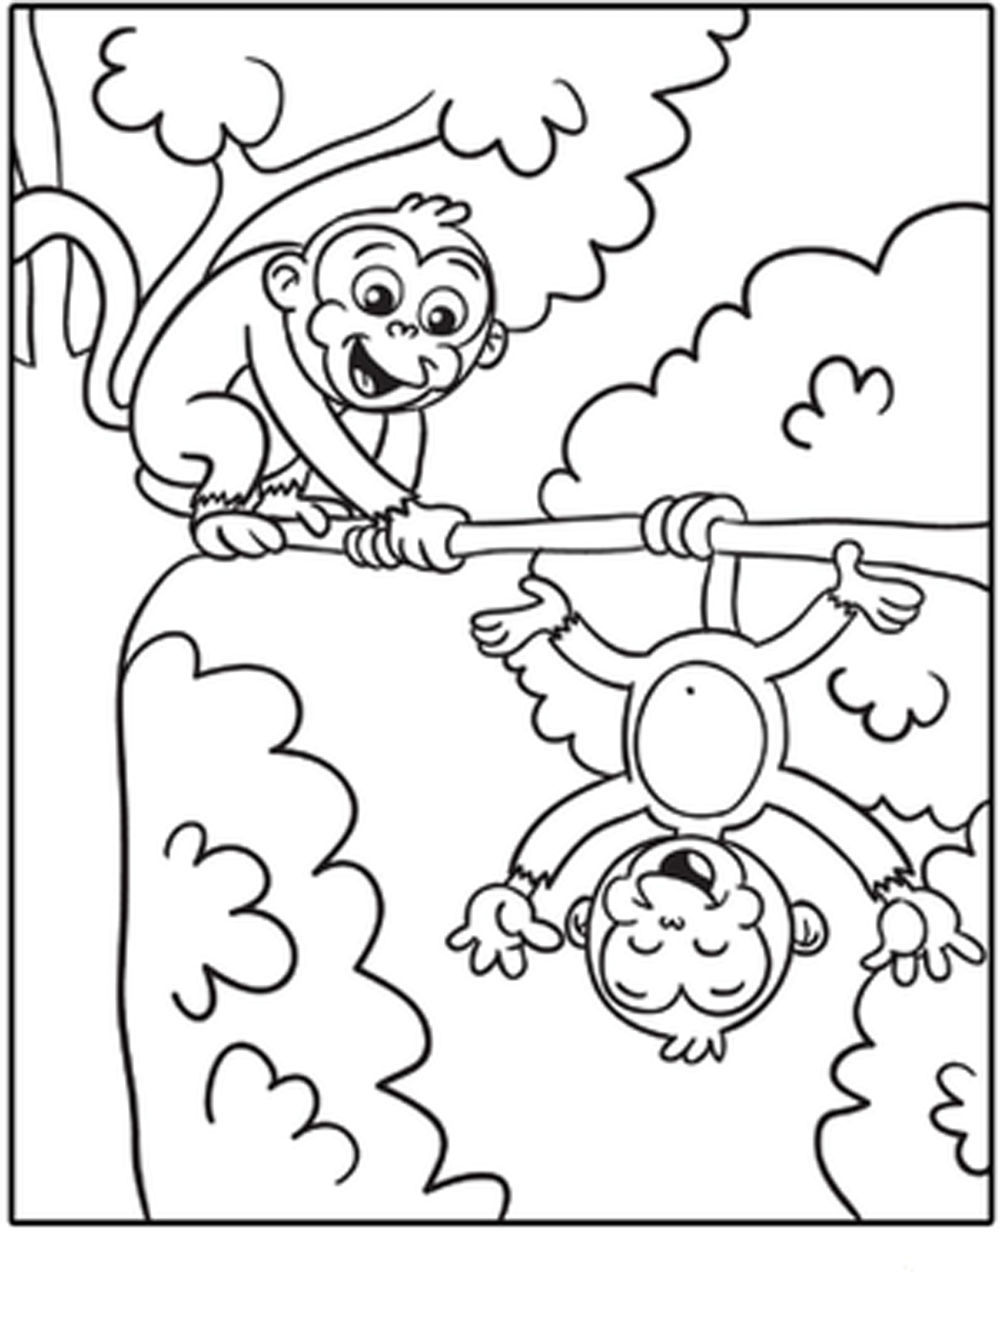 1000x1322 Strong Coloring Pages Of Monkeys Value Cute Ba